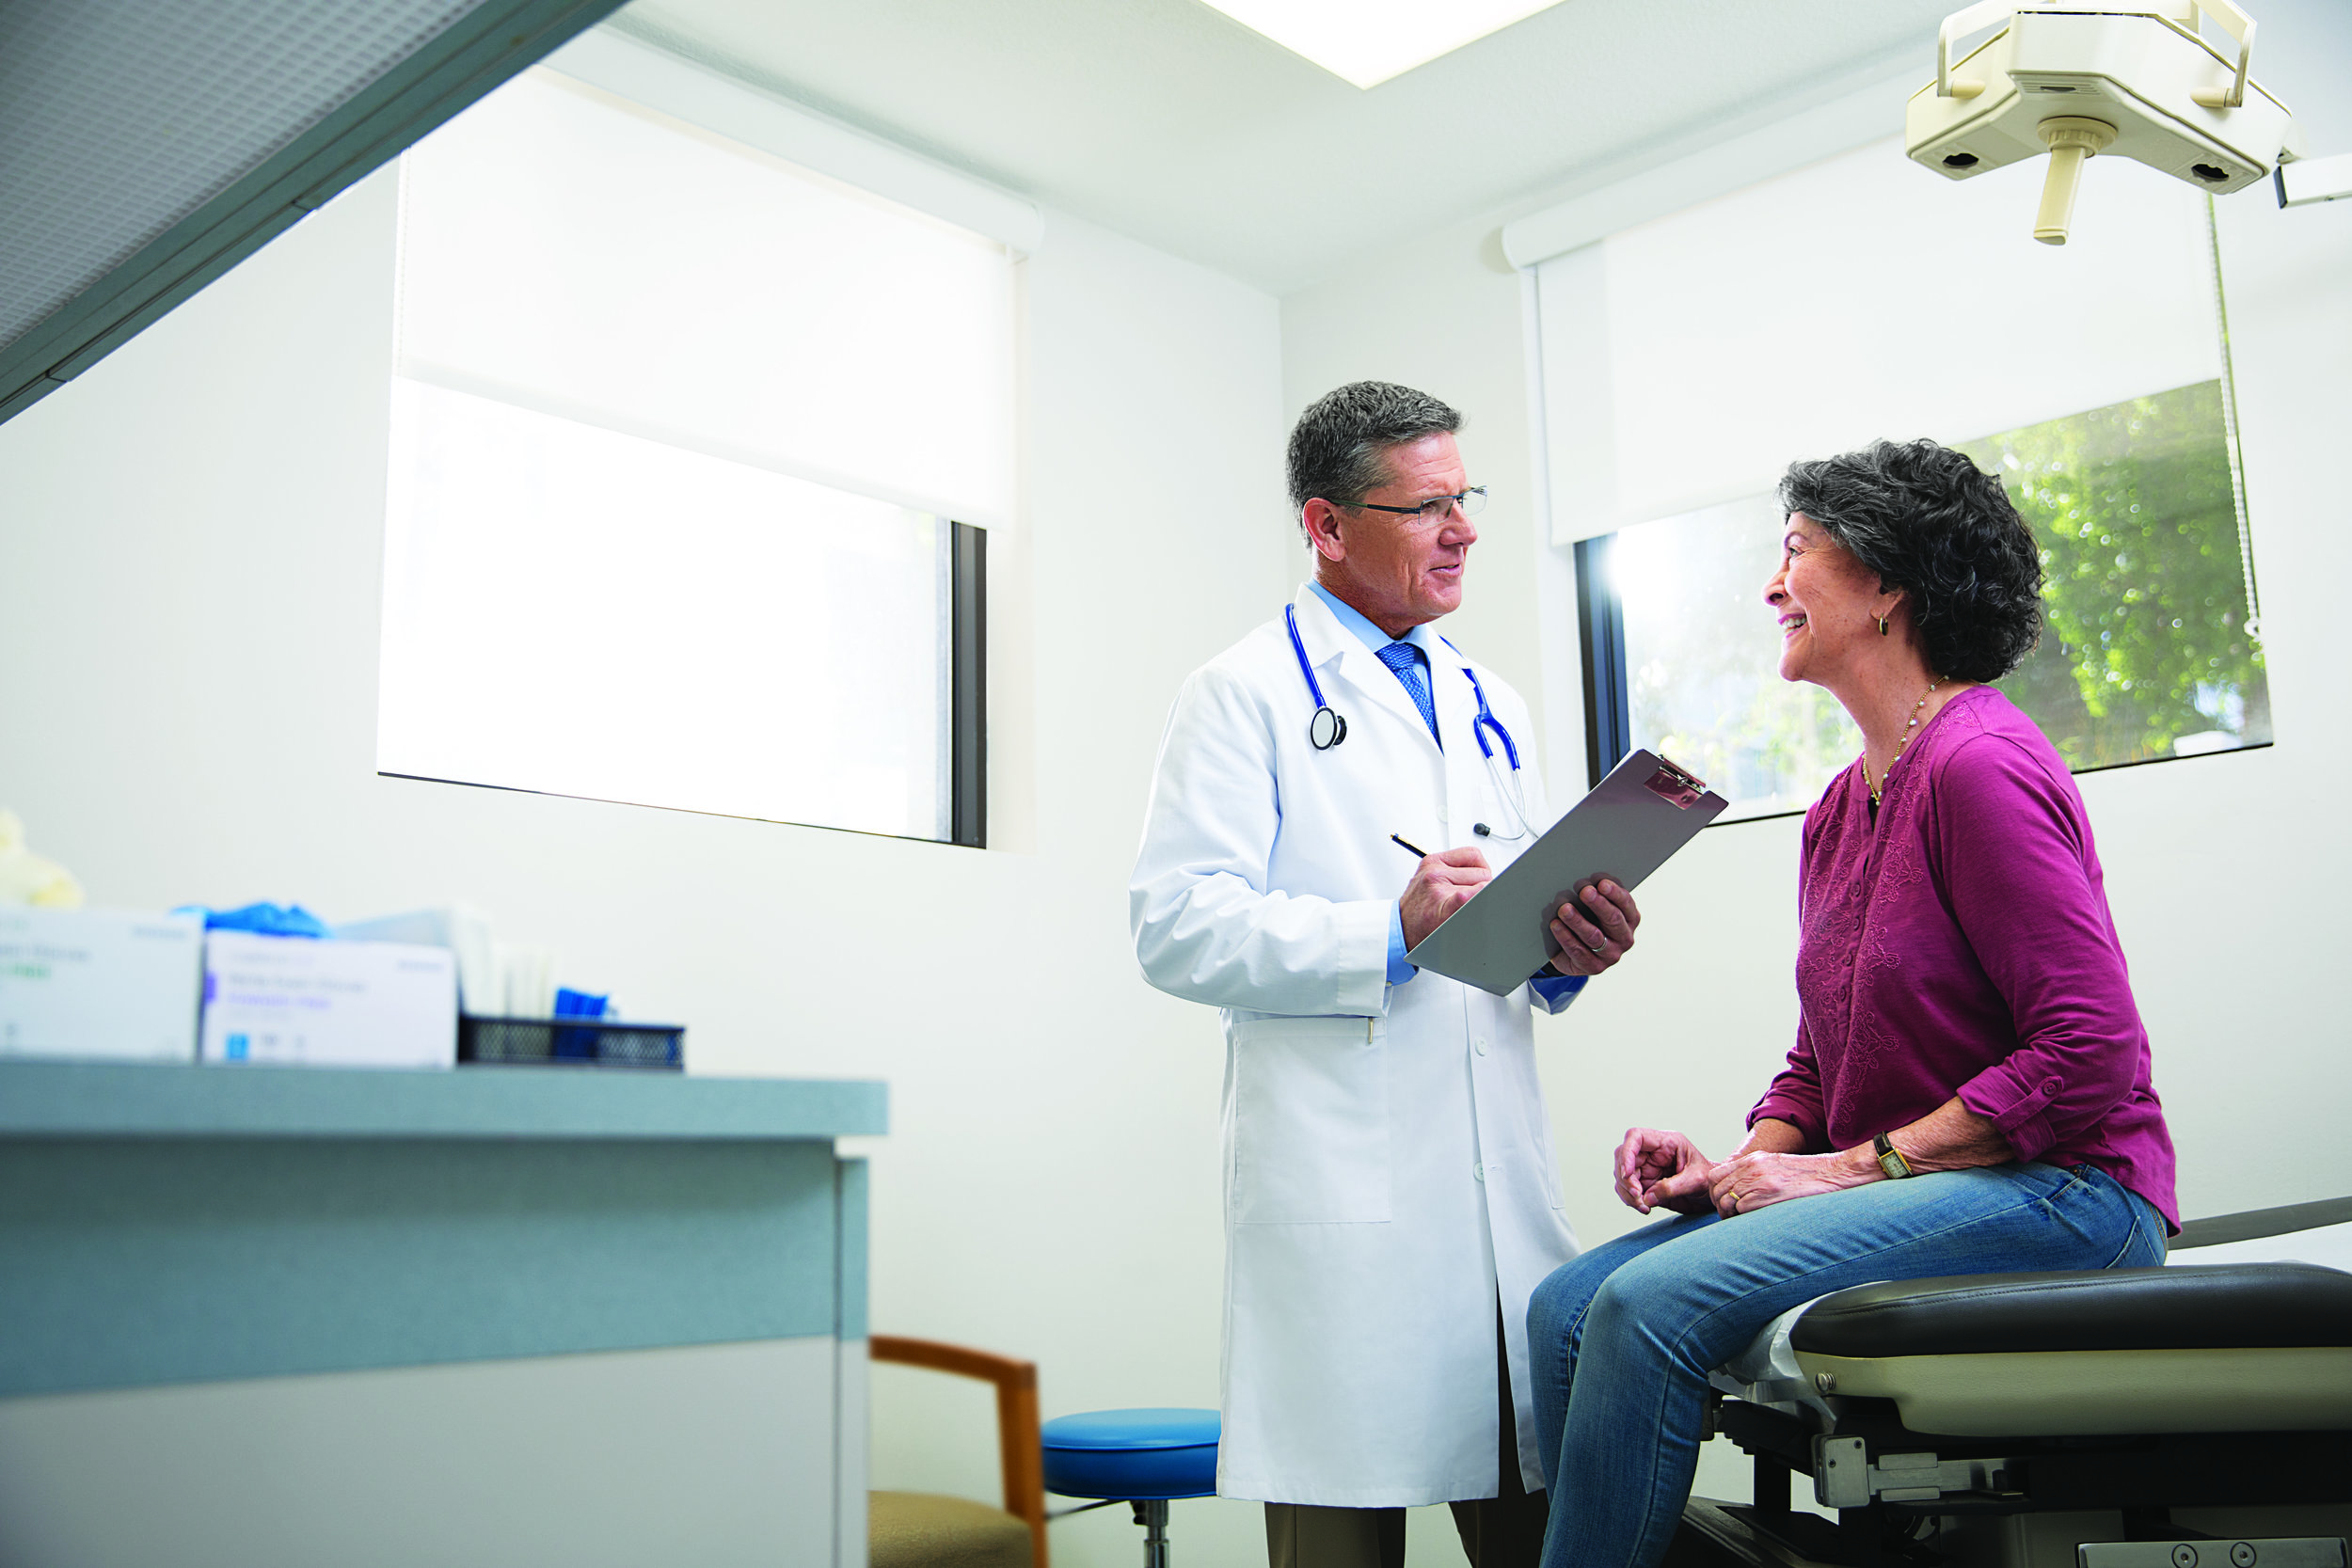 Patients with MBC and their families have complex needs that should be addressed to minimize severe distress and deterioration in quality of life. -